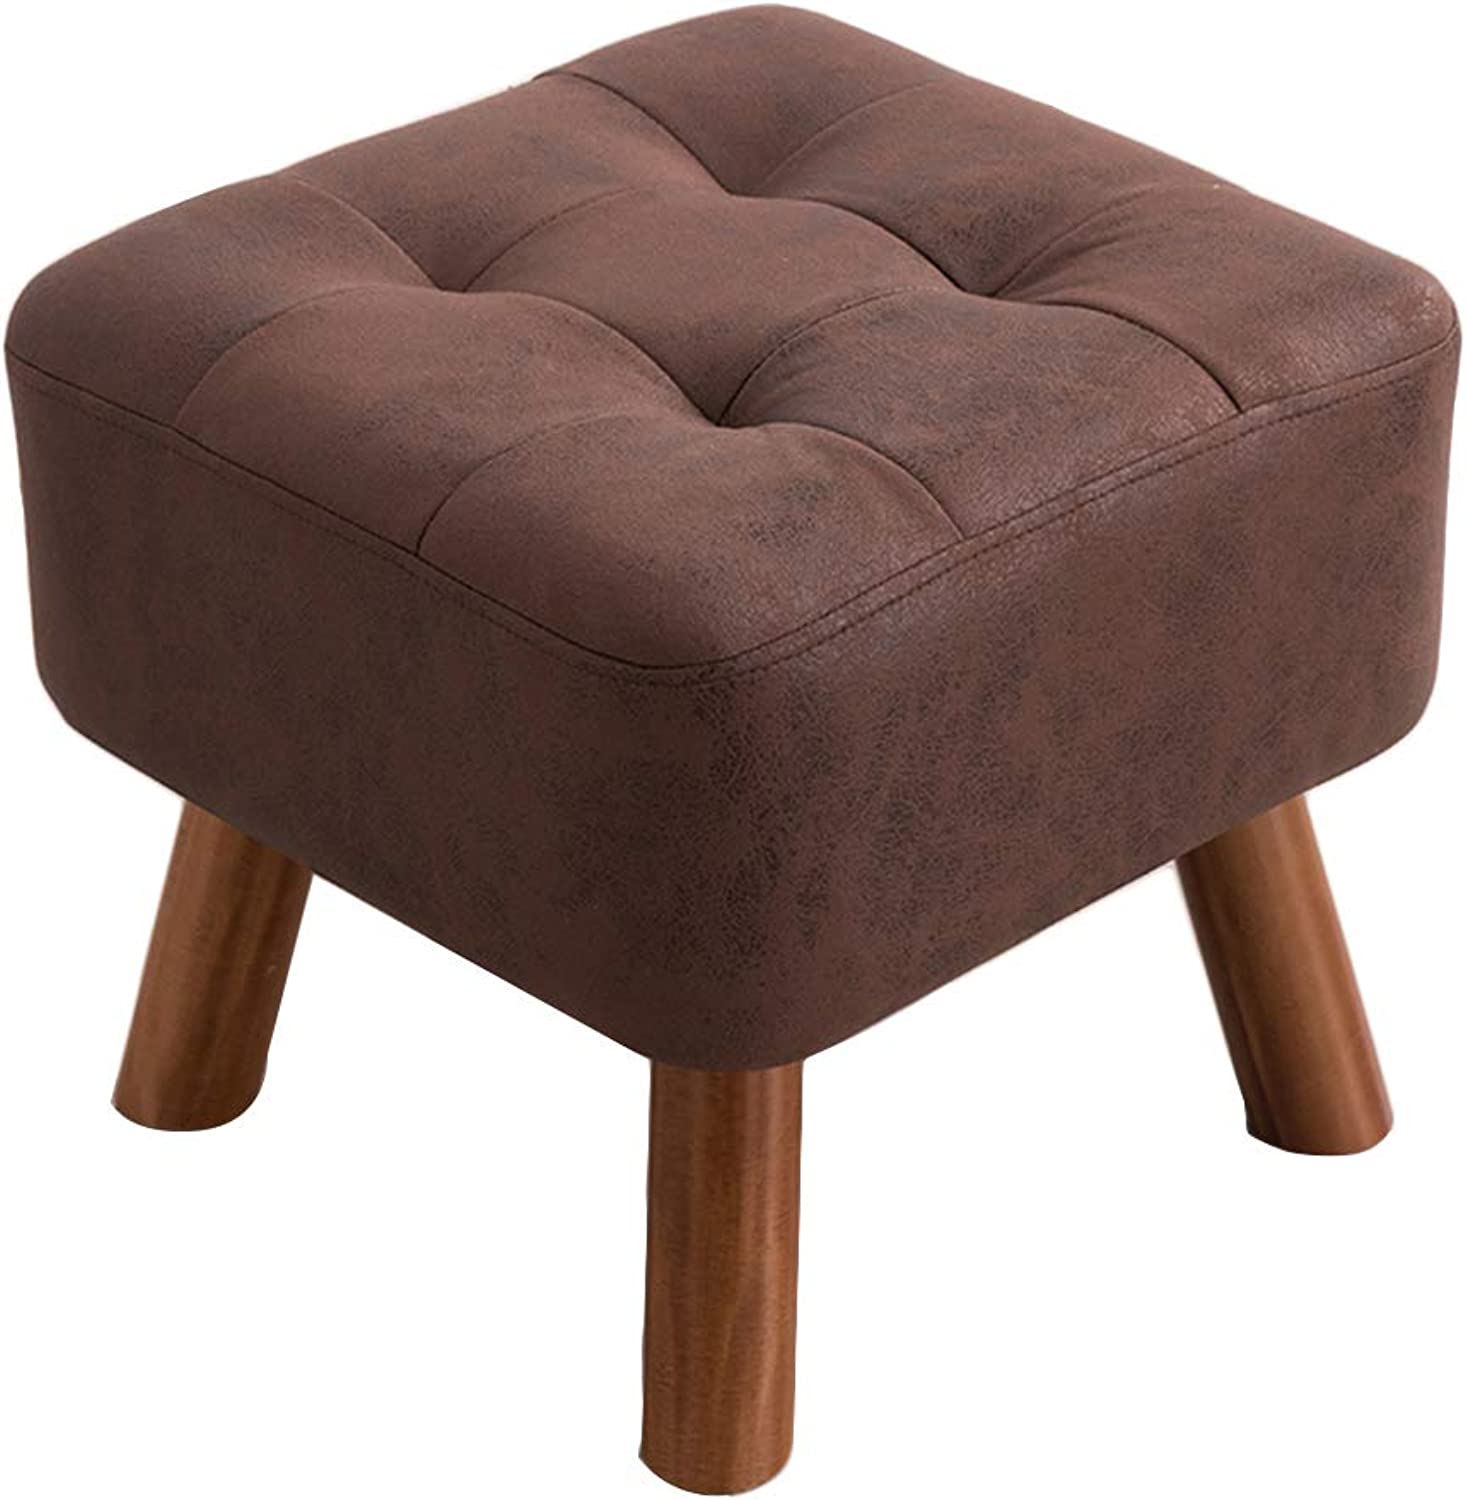 Change shoes Stool - Solid Wood Stool Stool Fashion Creative Sofa Bench Coffee Table Wear shoes Sitting Pier Dressing Footstool shoes Bench (color   B)